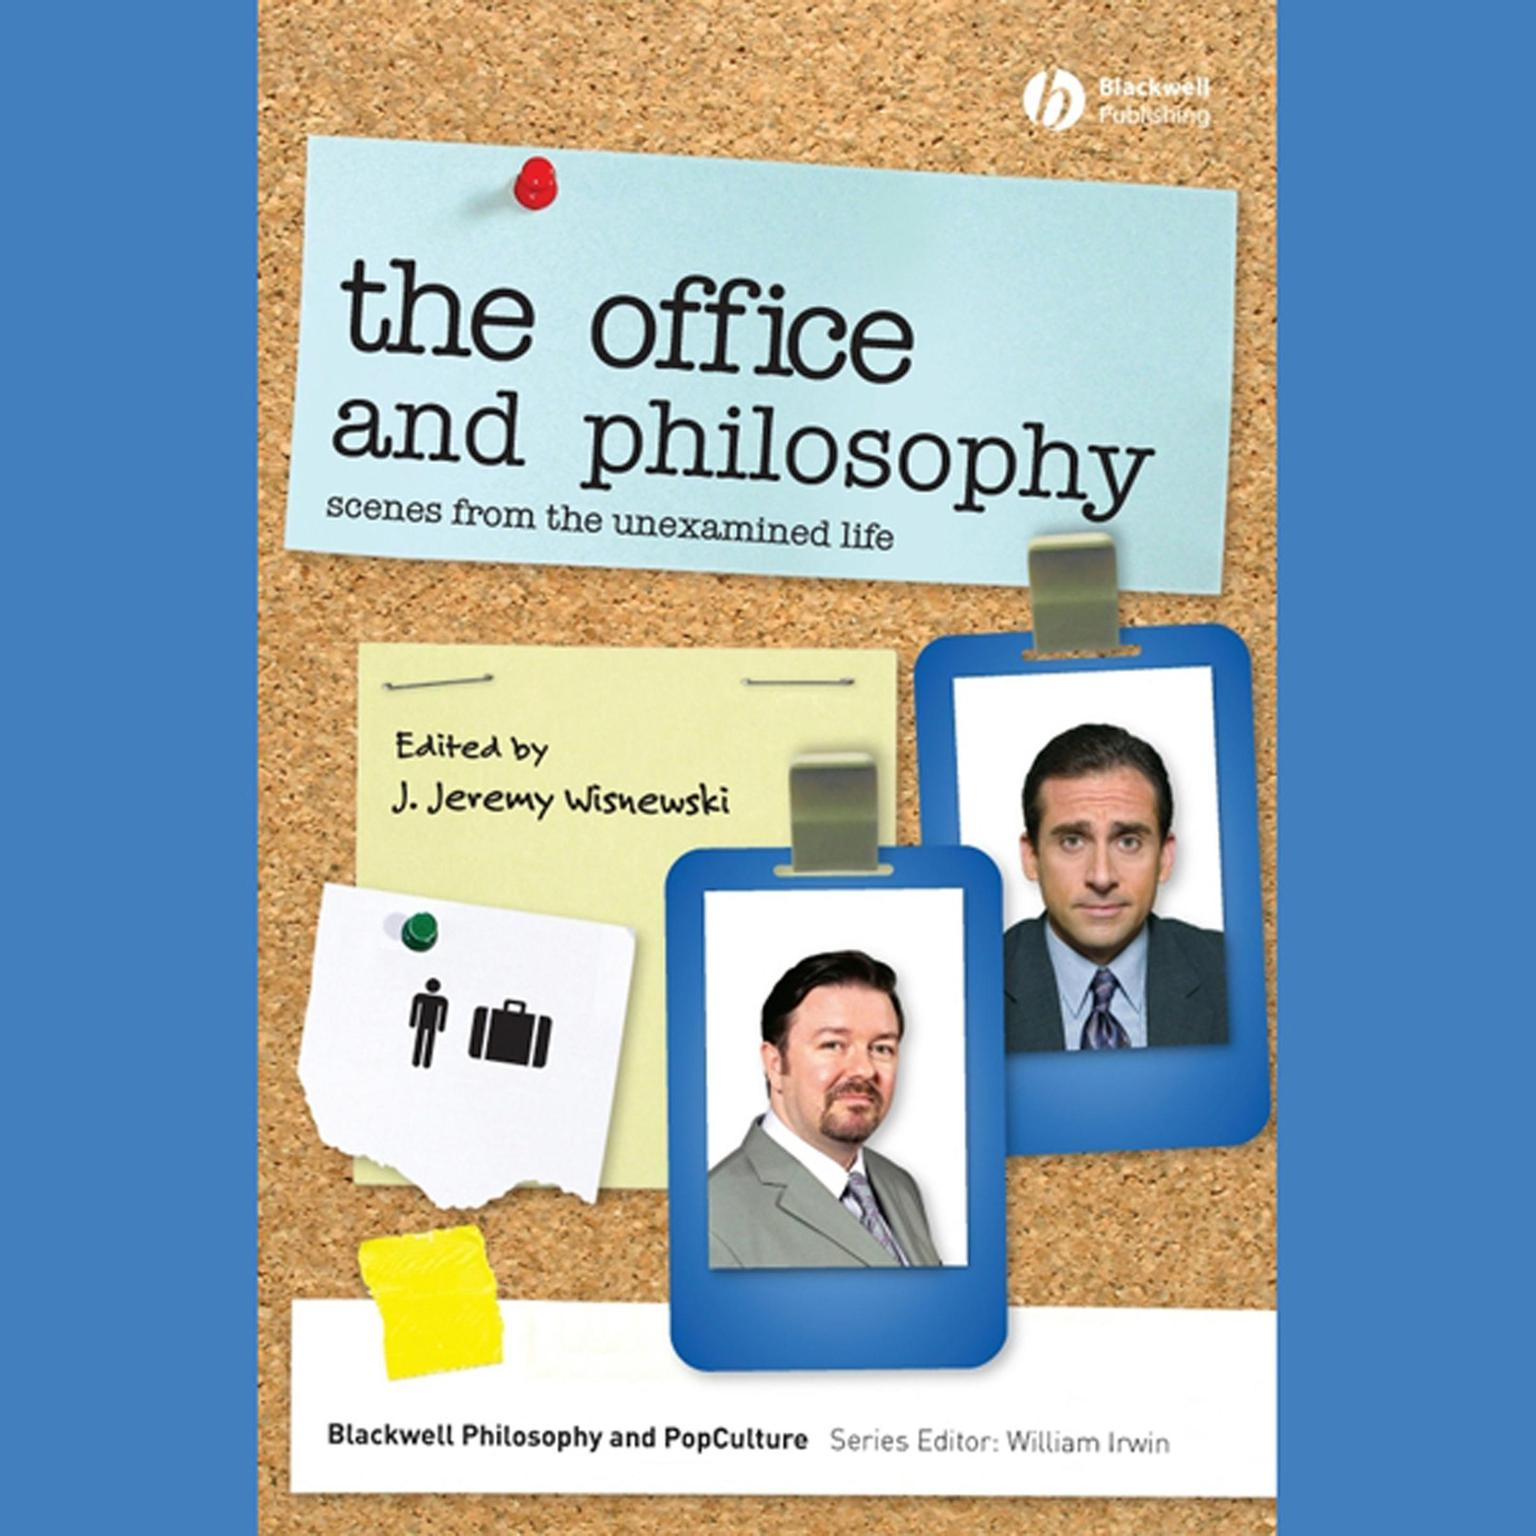 The Office and Philosophy: Scenes from the Unexamined Life Audiobook, by J. Jeremy Wisnewski